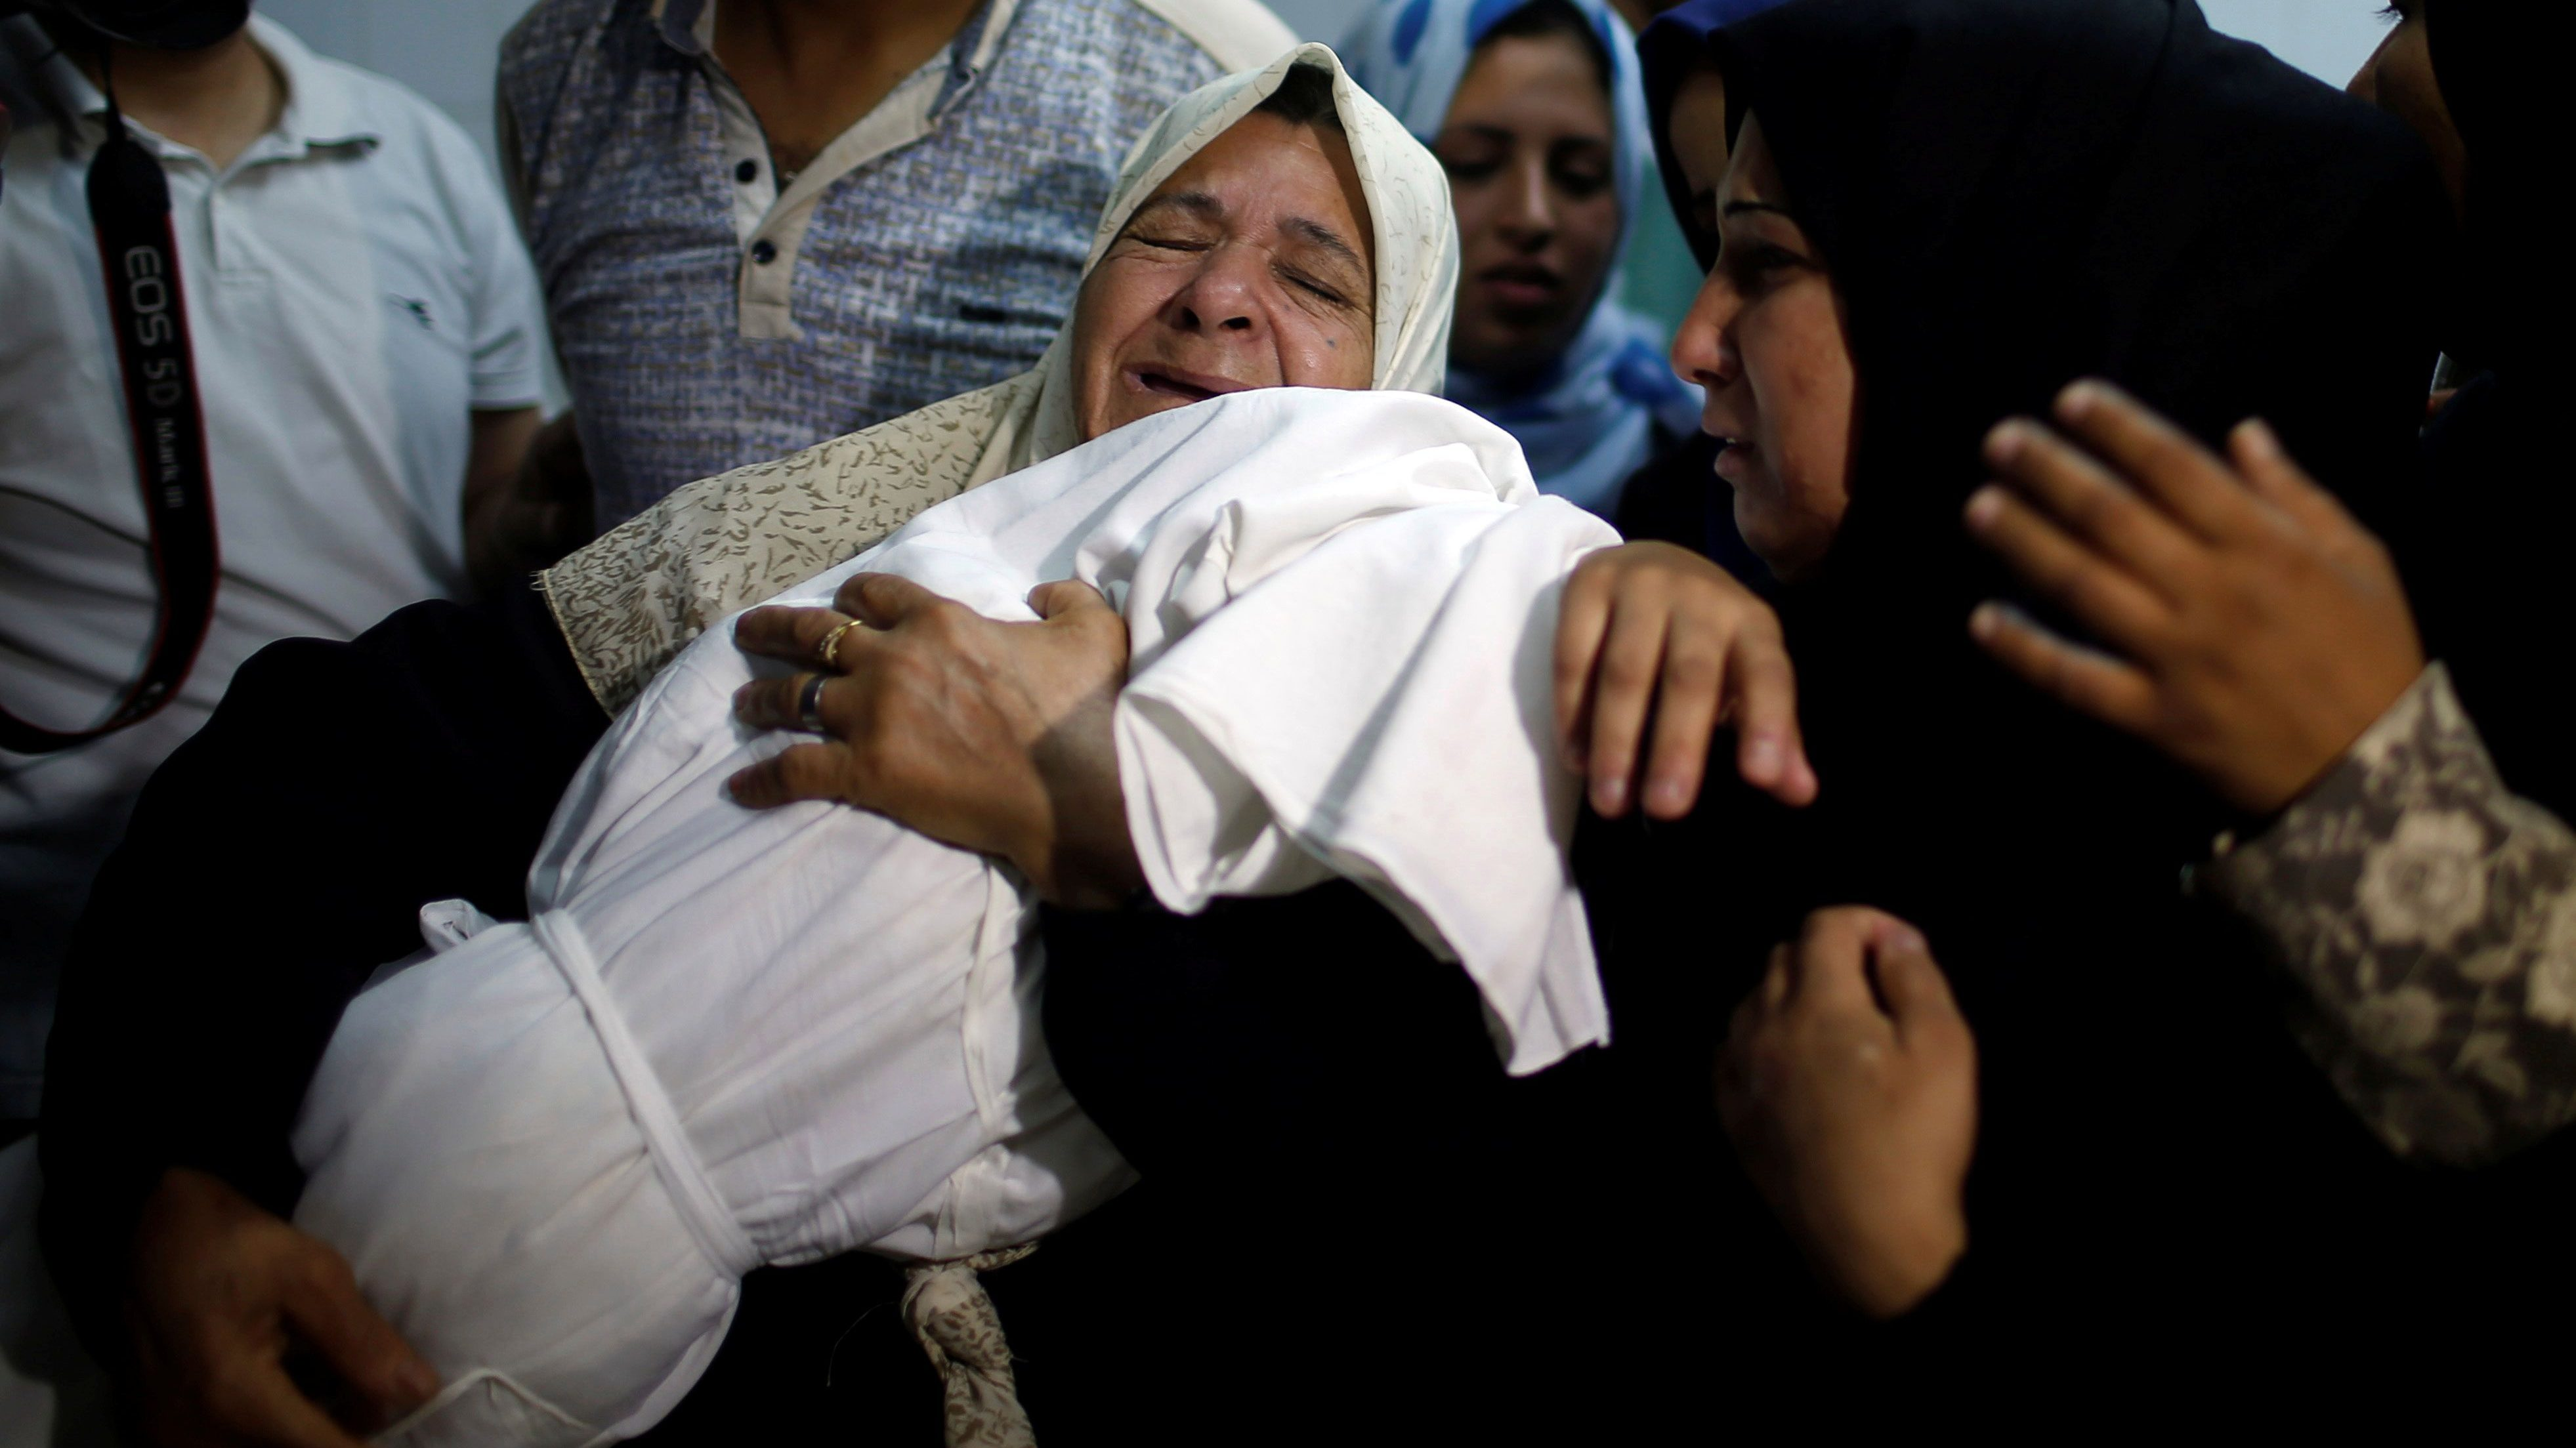 A relative mourns as she carries the body of 8-month-old Palestinian infant Laila al-Ghandour during her funeral in Gaza City on May 15, 2018.